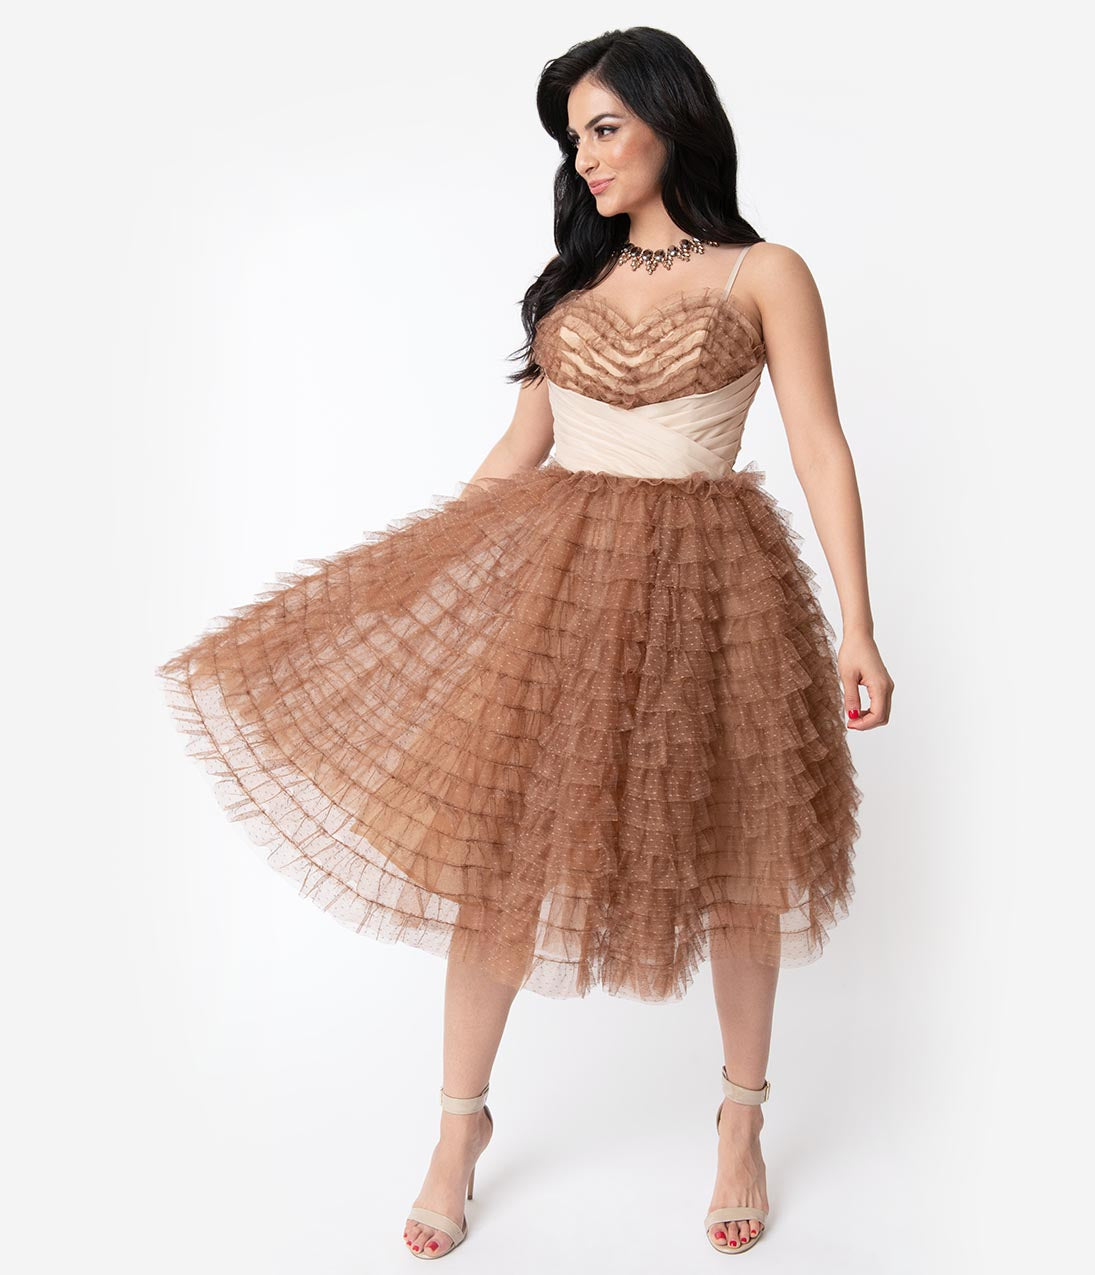 1950s Formal Dresses & Evening Gowns to Buy Unique Vintage 1950S Mocha Ruffled Tulle Sweetheart Cupcake Swing Dress $128.00 AT vintagedancer.com